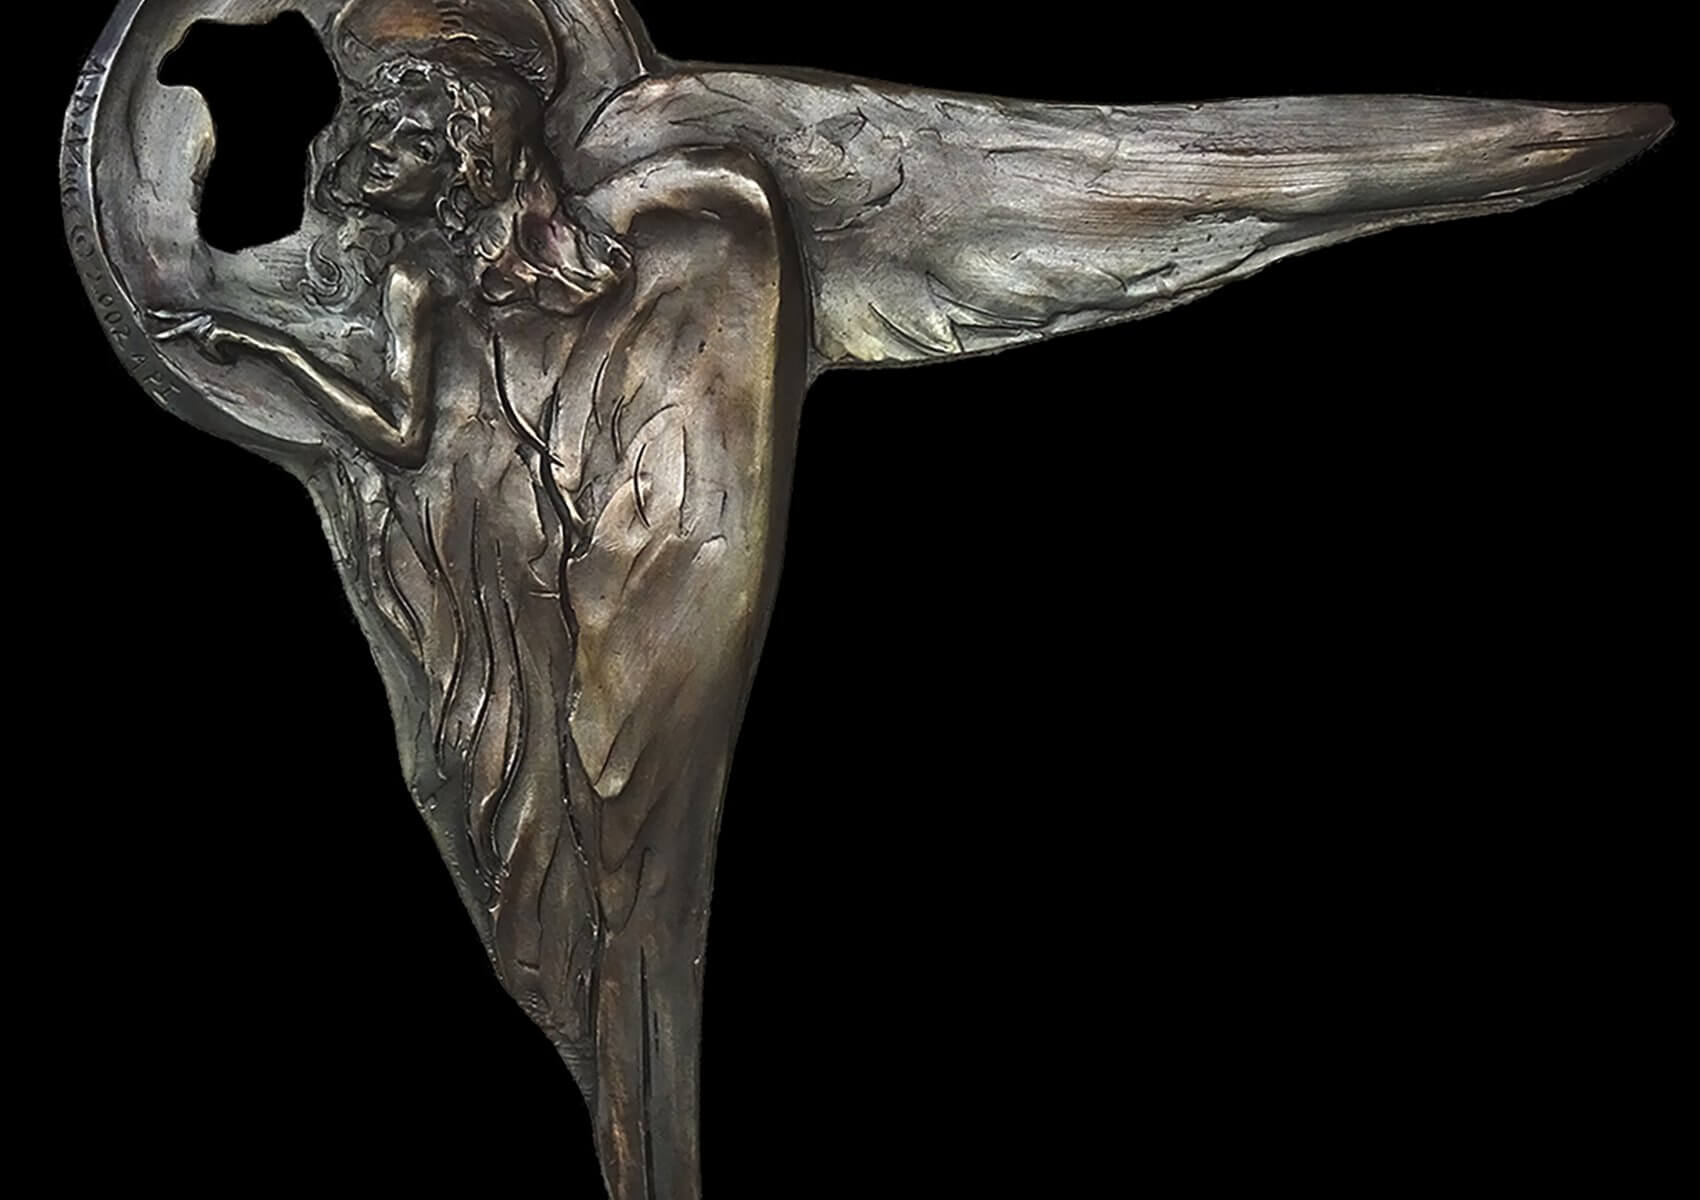 Firenze Angel, a bronze wall relief sculpture by Andrew DeVries copyright 2003.